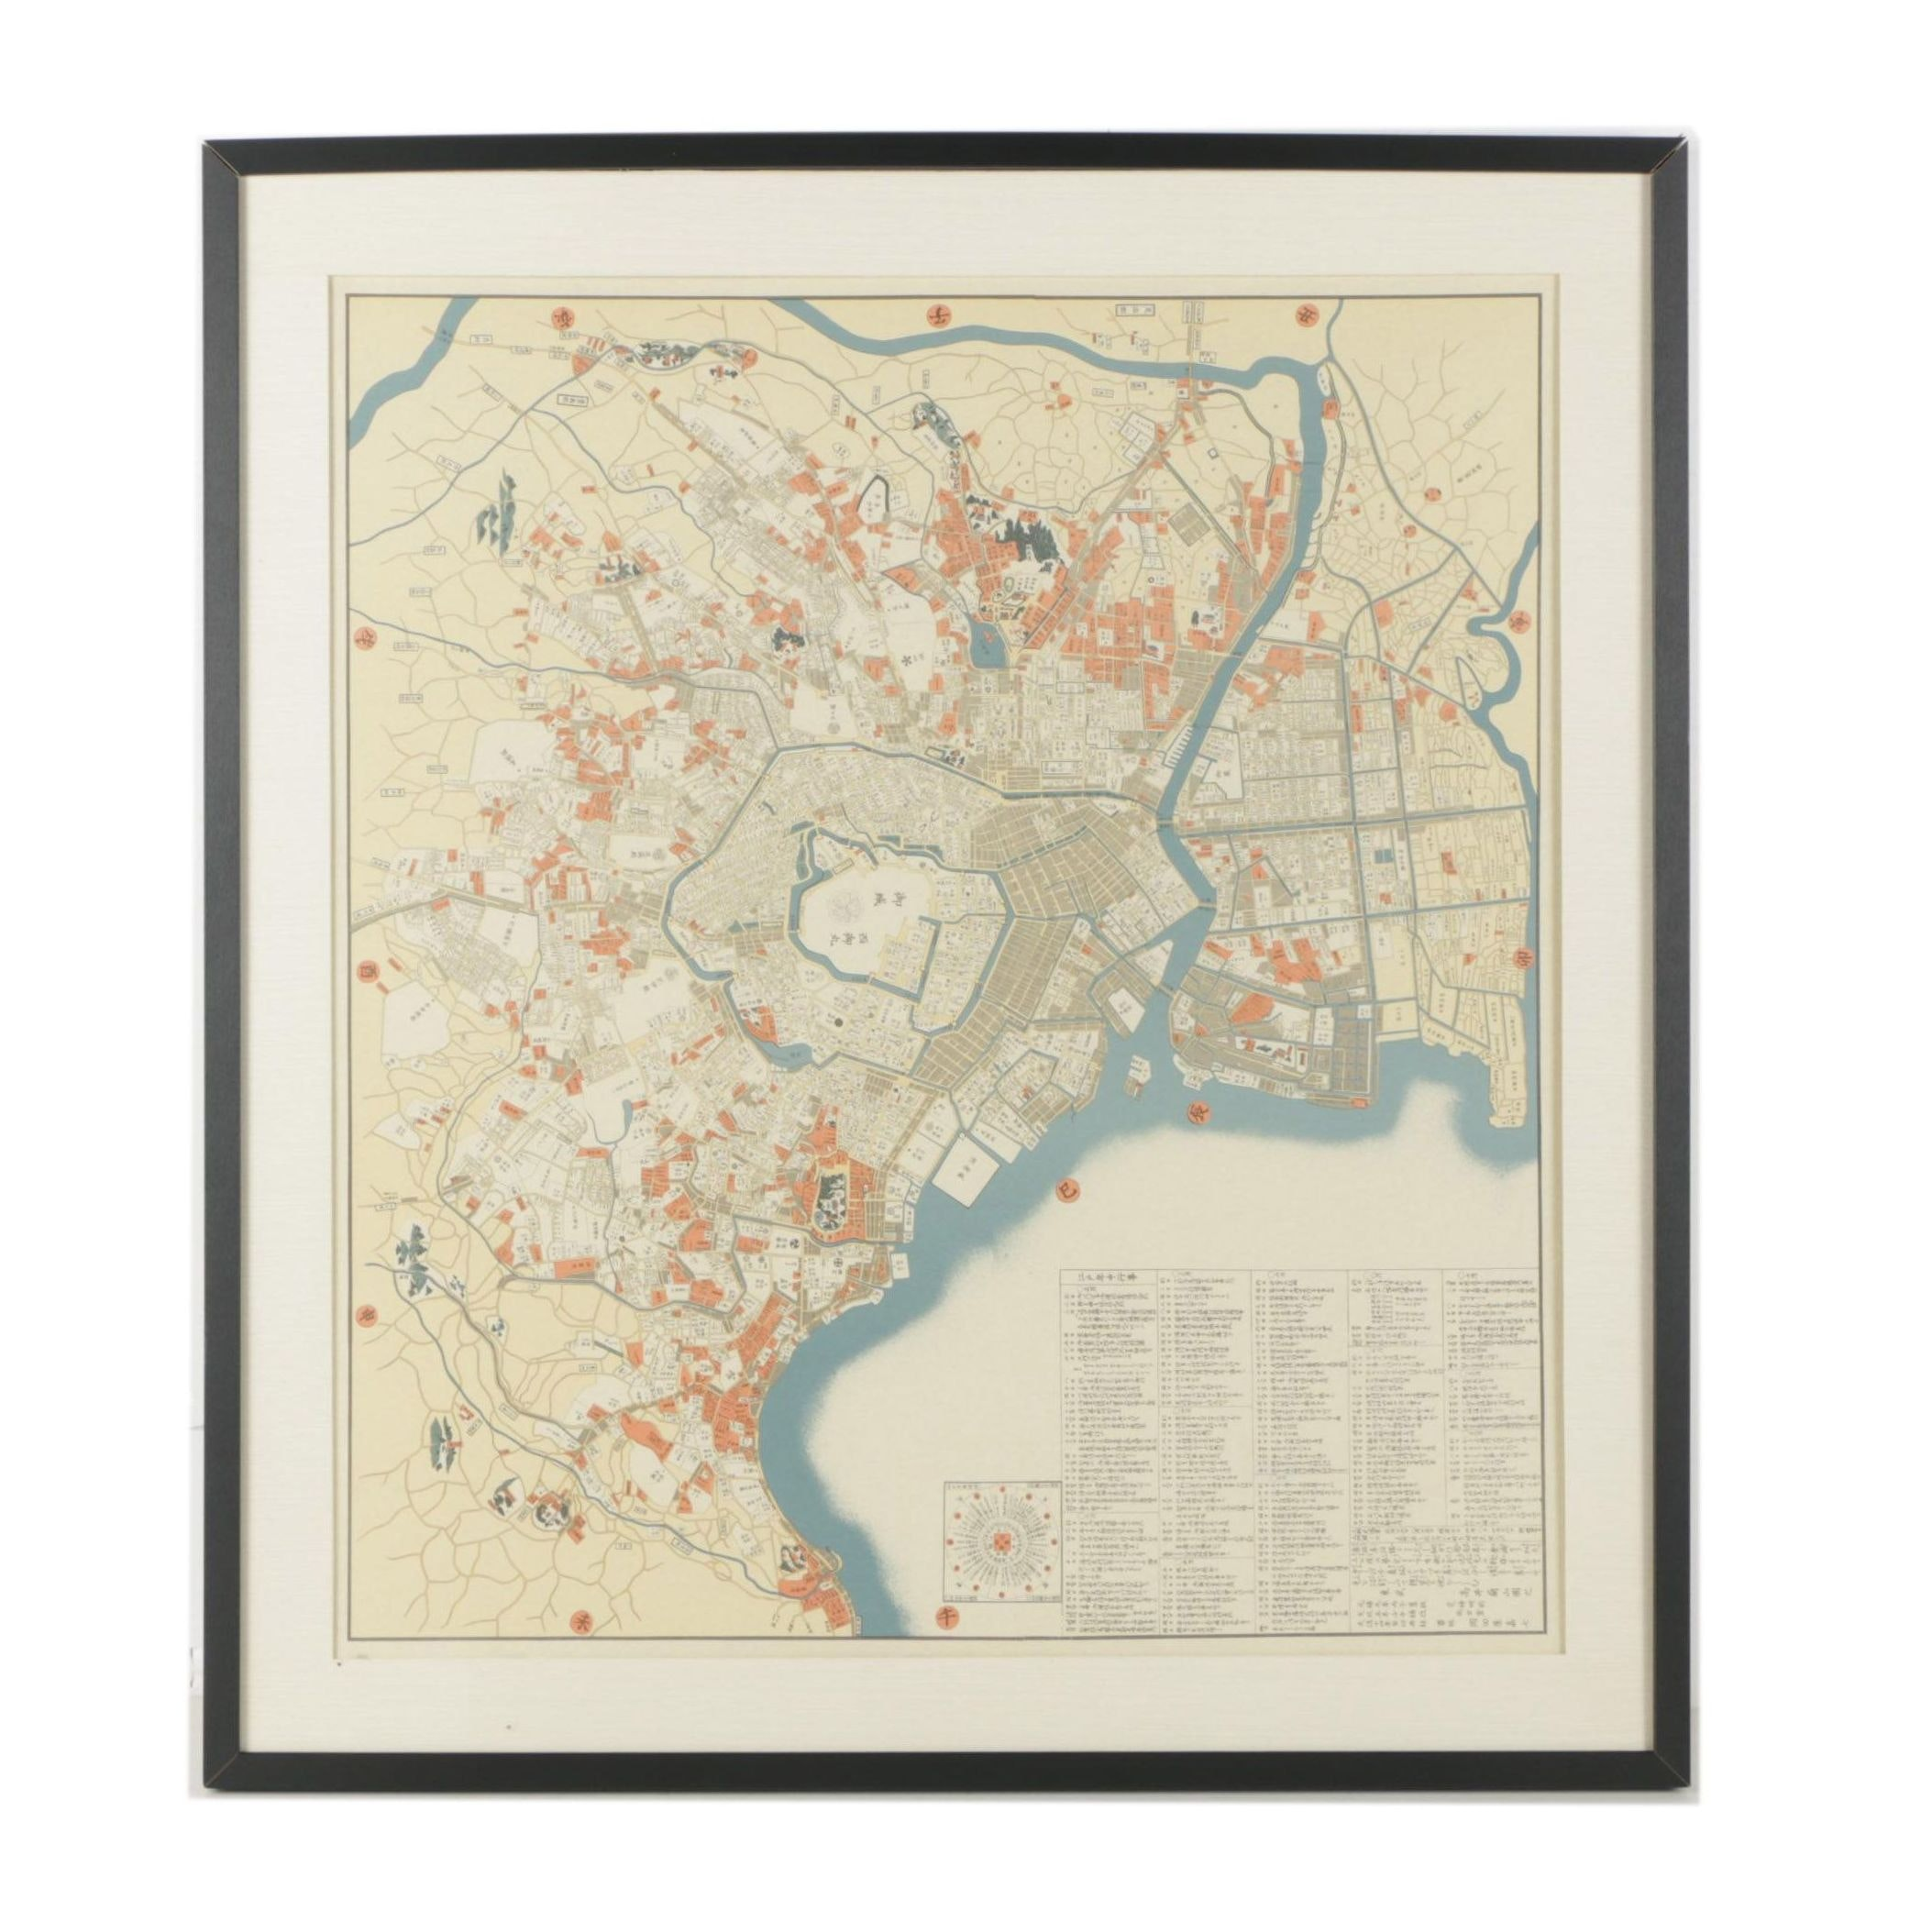 Japanese Woodblock Print Map